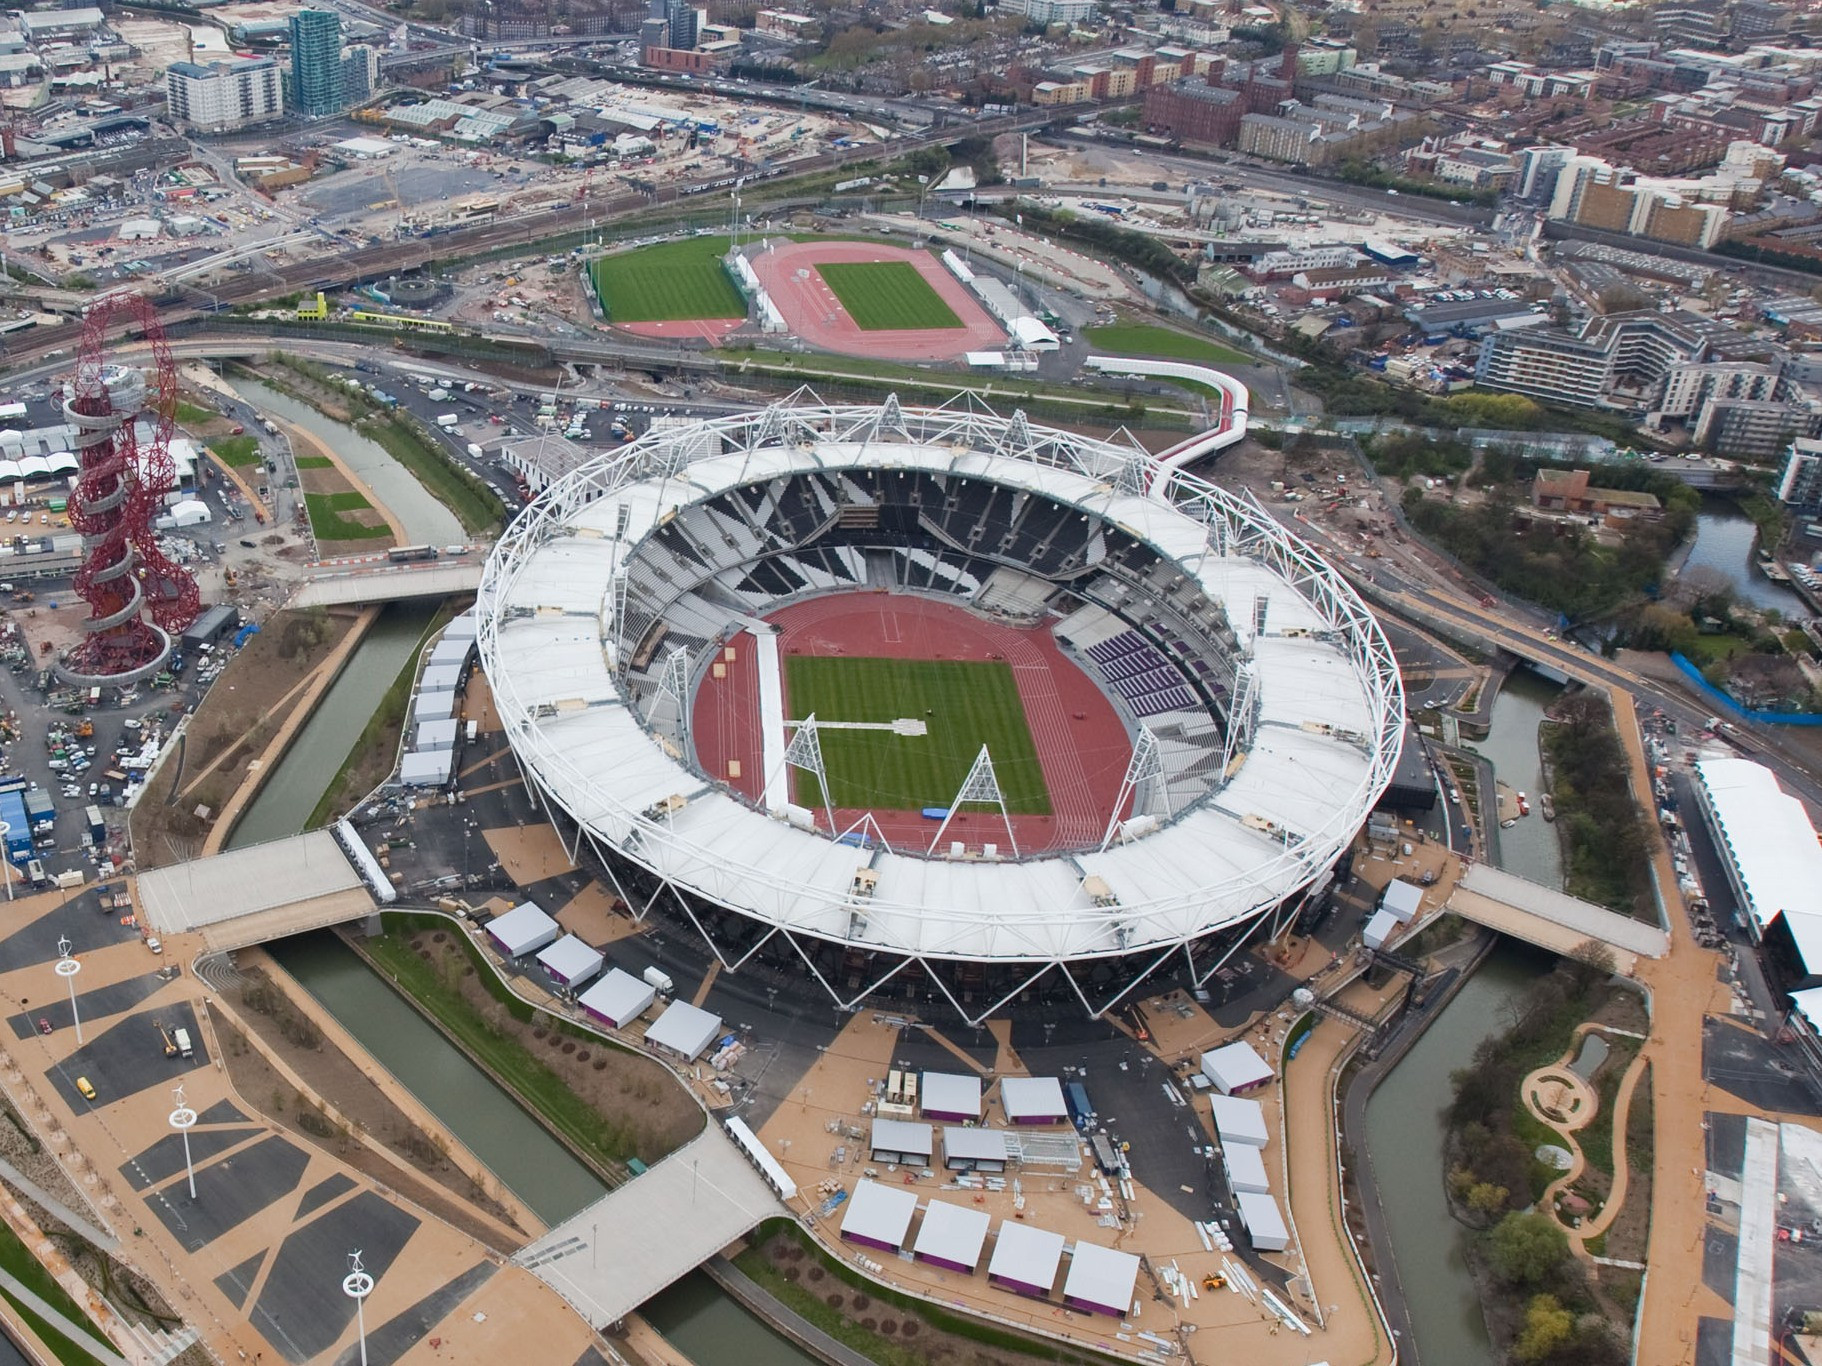 West Ham insist they have the final say over any potential groundshare at the London 2012 Olympic Stadium ©Getty Images